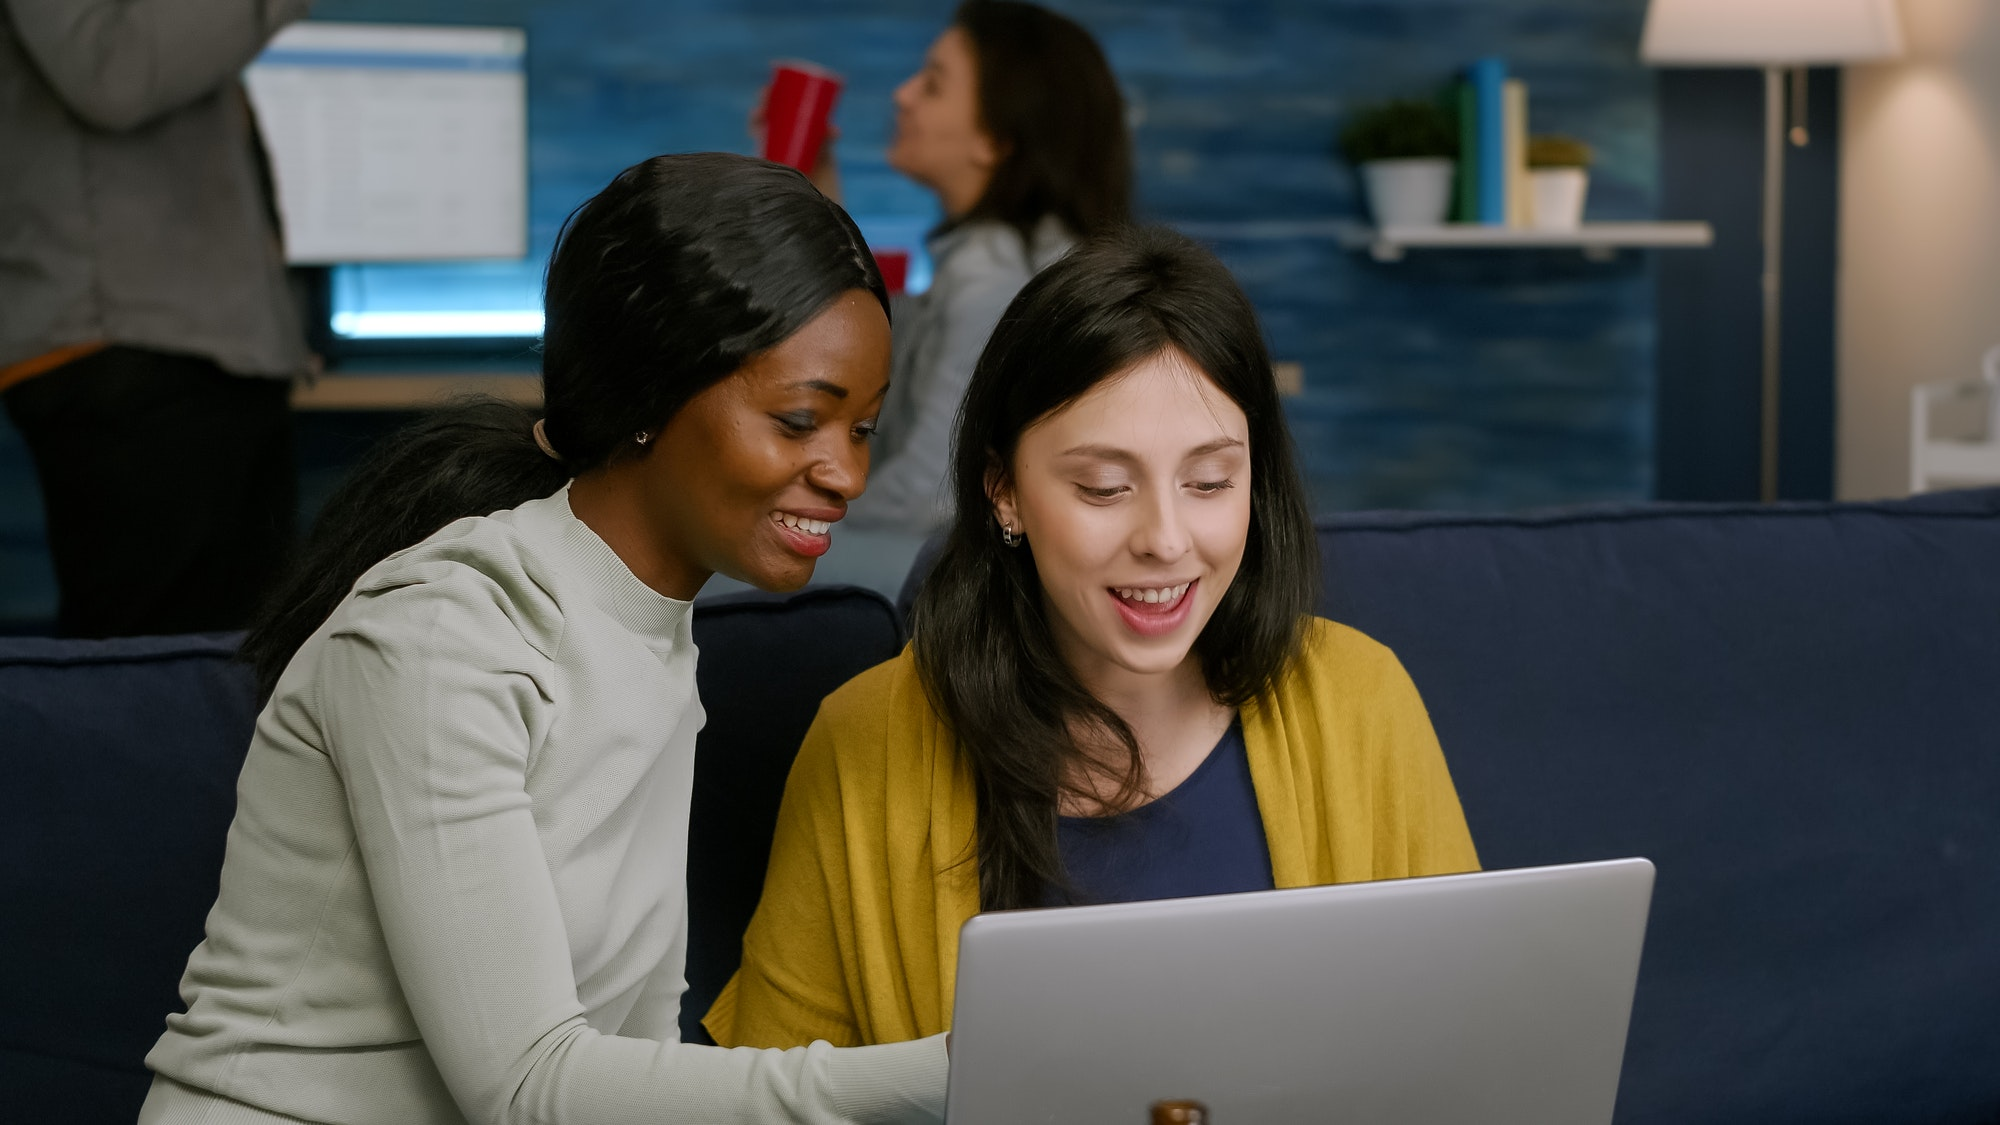 Multiracial friends laughing while watching funny video on laptop